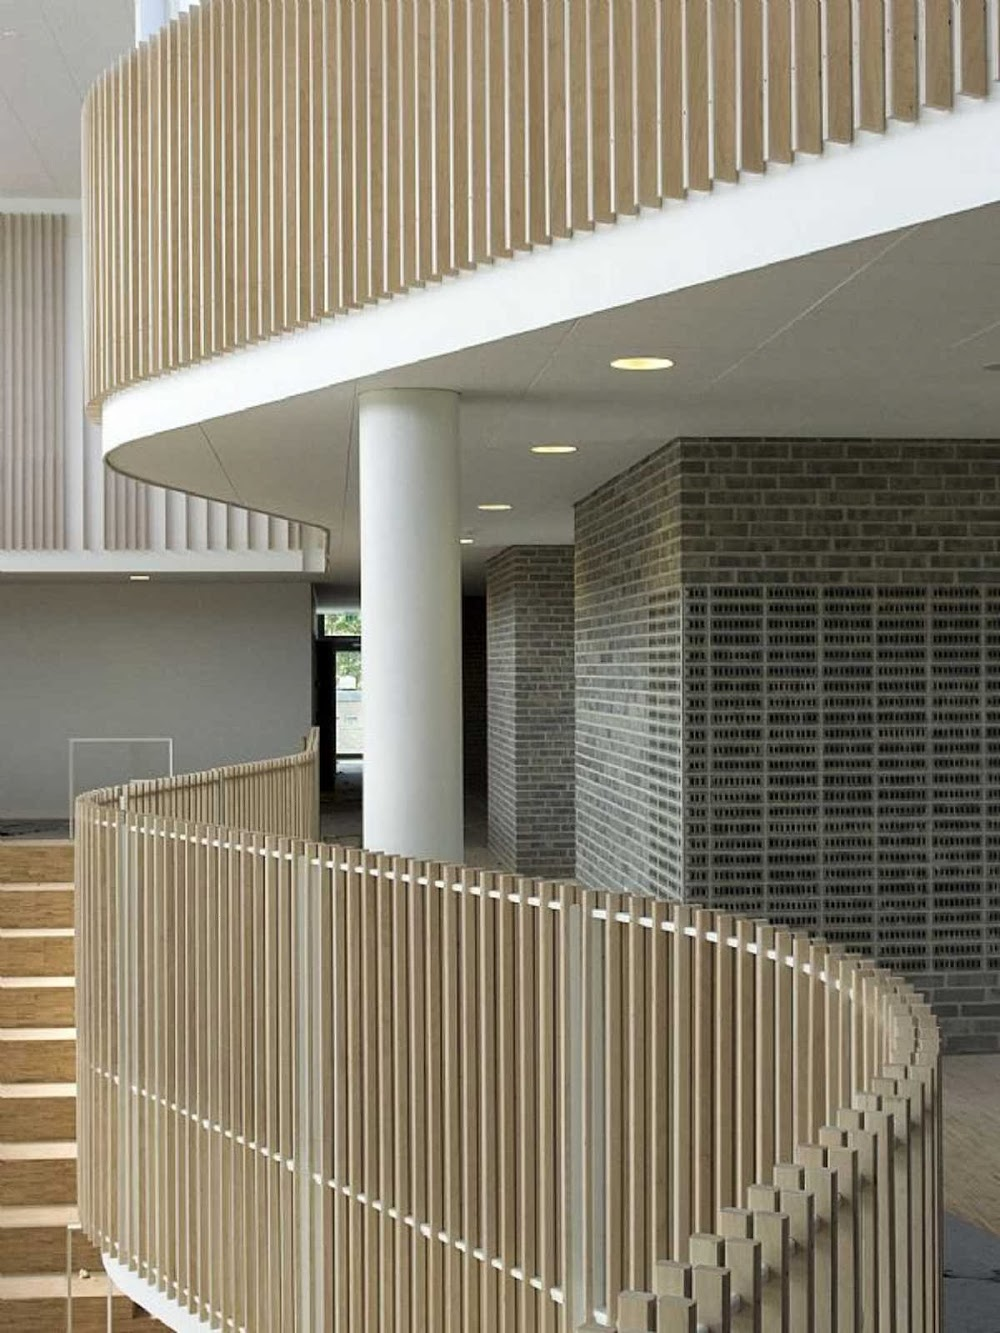 09-International-School-Ikast-Brande-by-C.F.-Møller-Architects